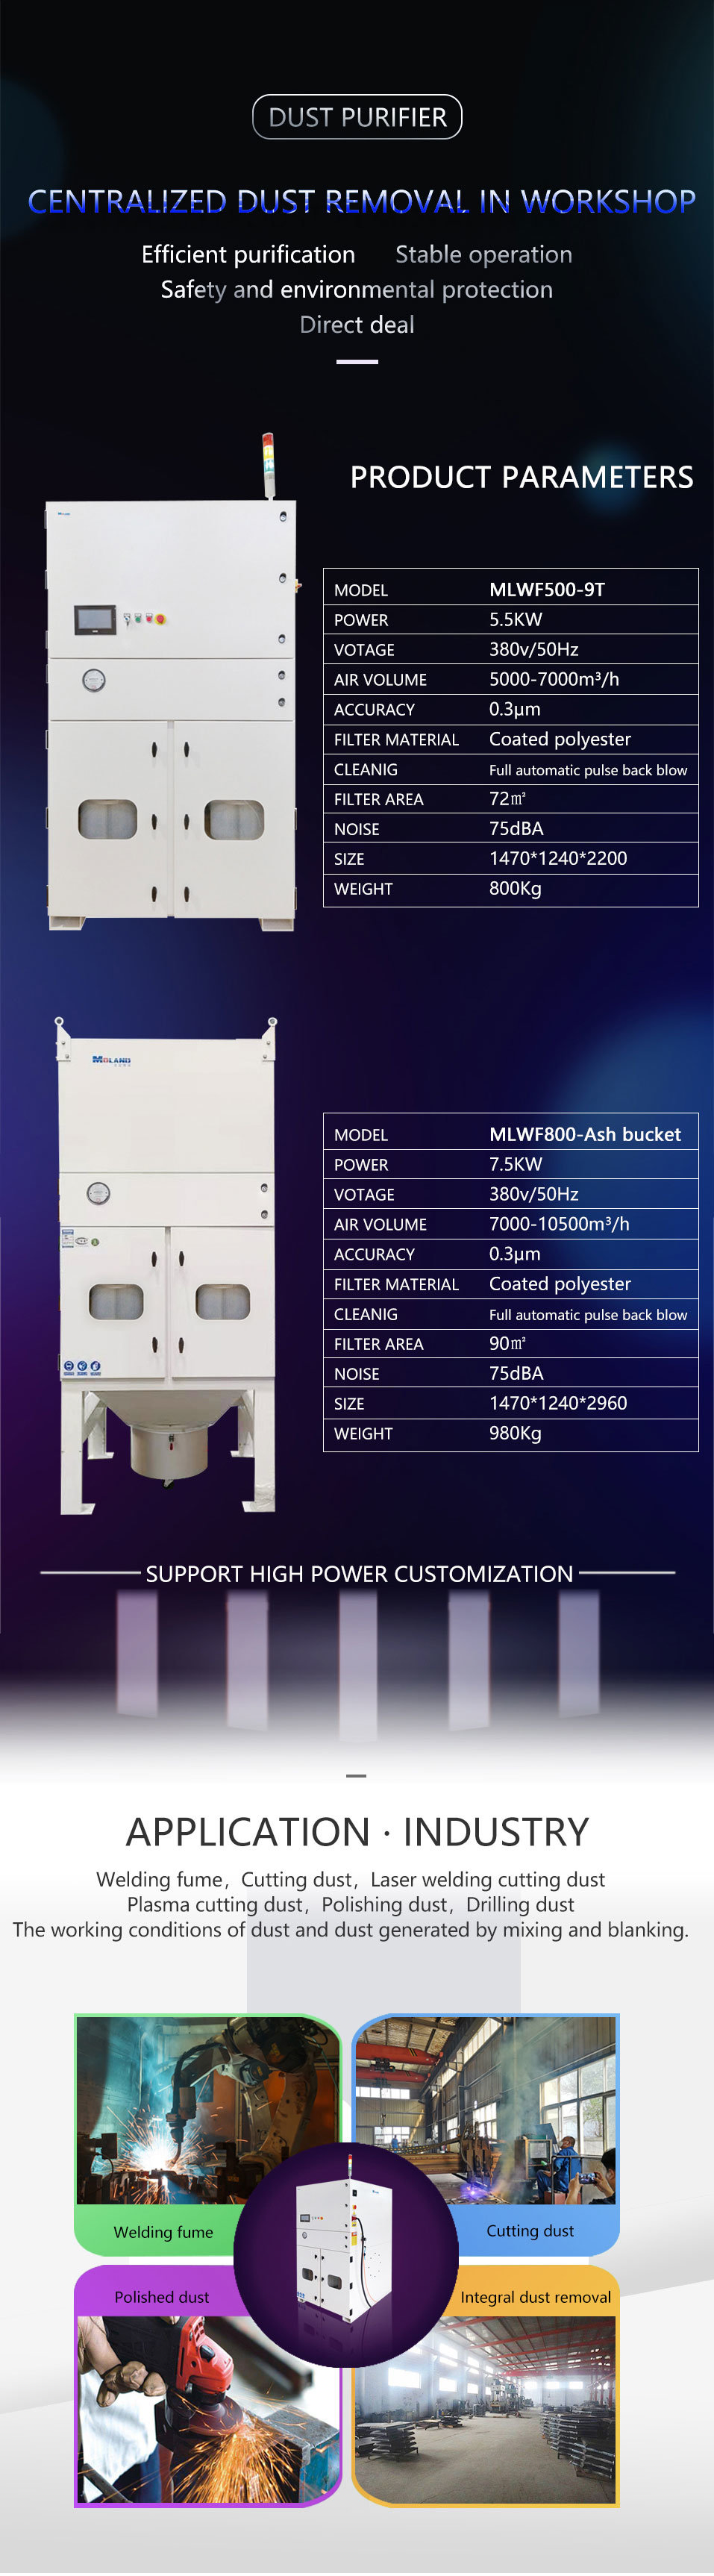 Cartridge Filters Industrial Dust Collector for Welding/Granding/Plasma Cutting